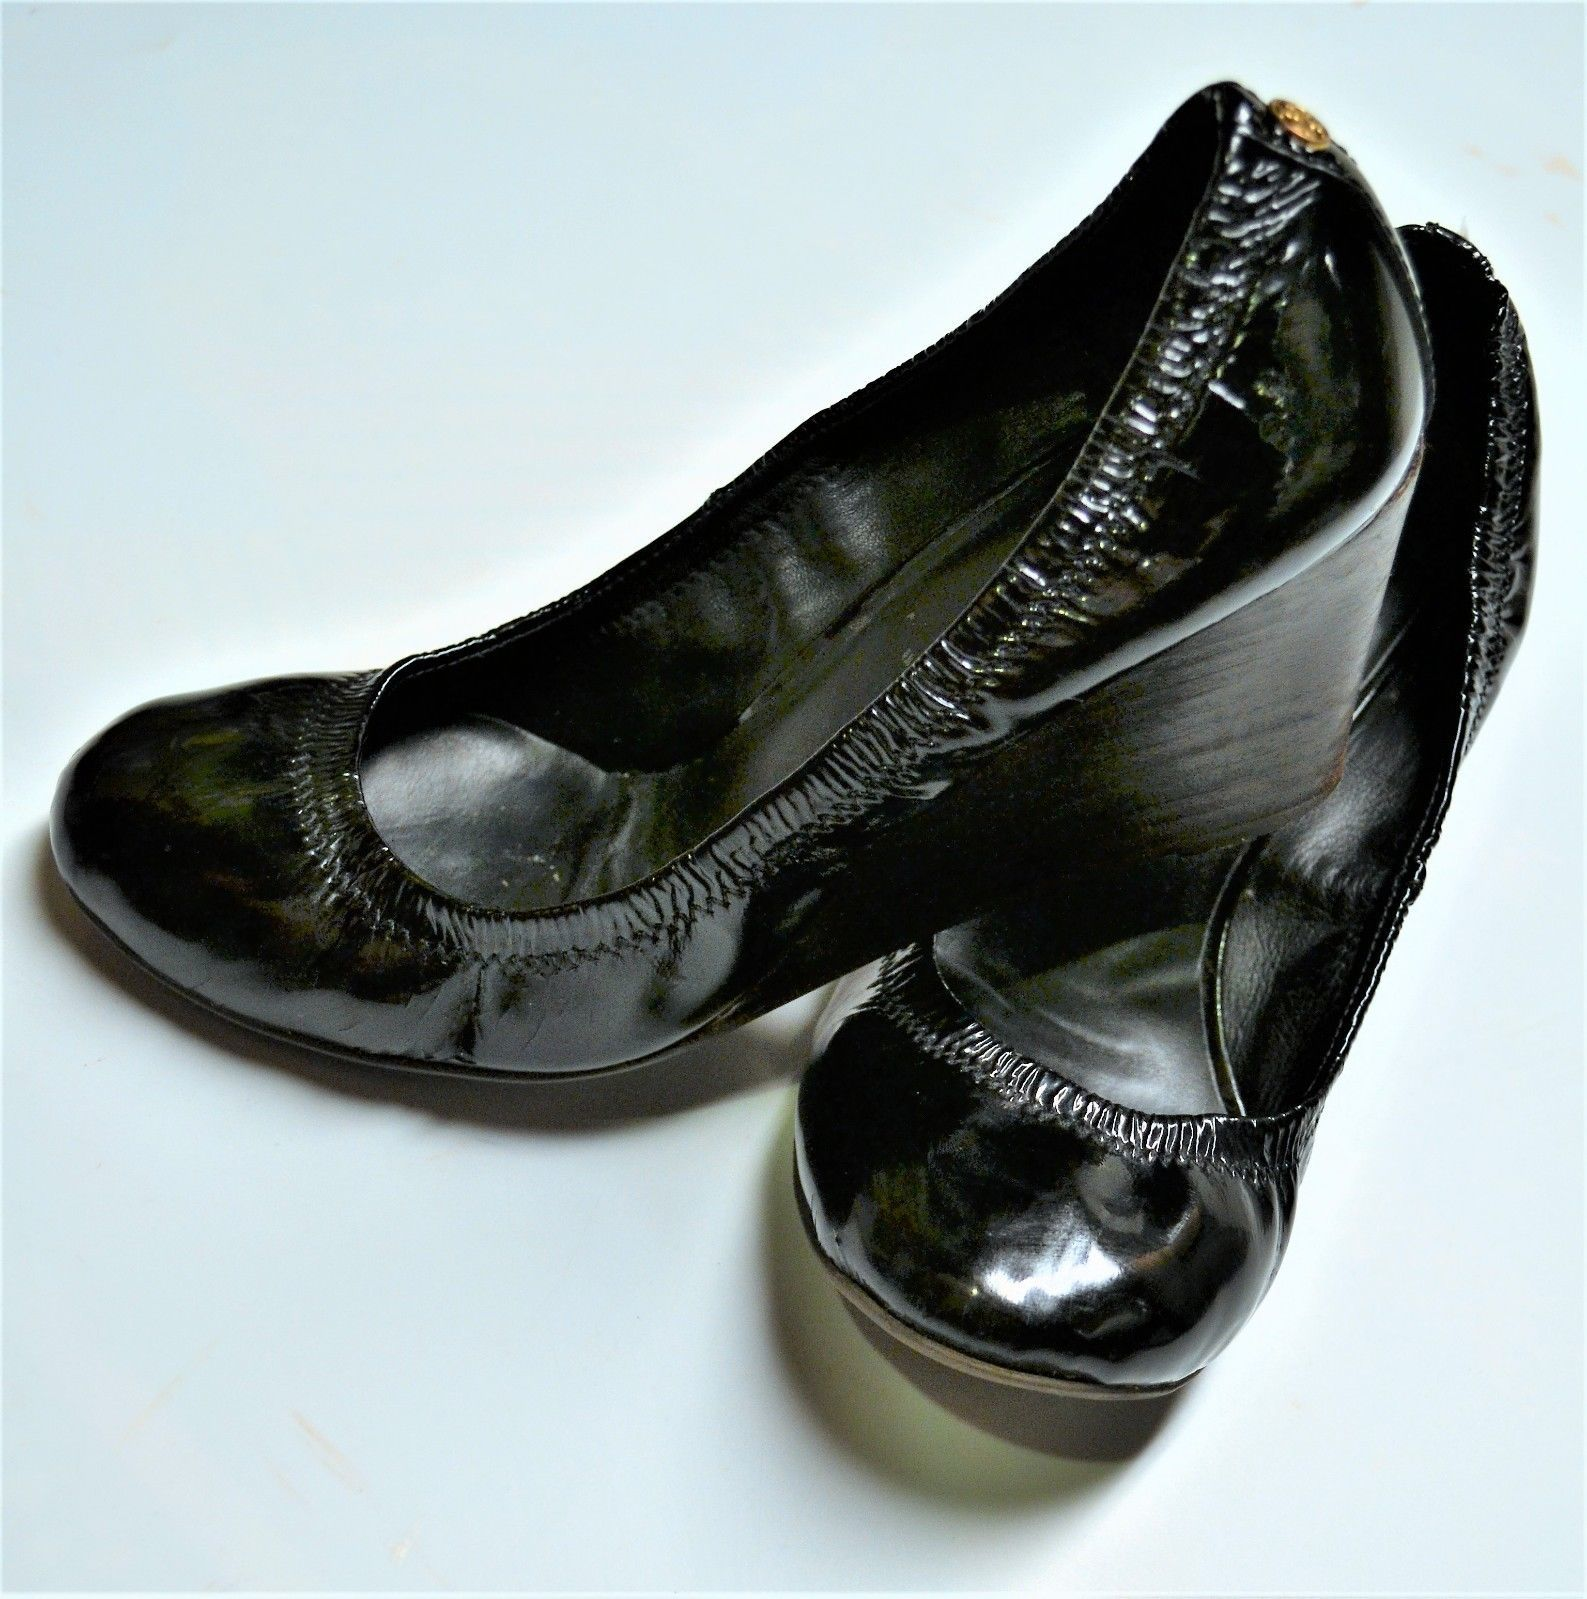 9d98bfa2117 Tory Burch Black Eddie Patent Leather Wedge Slip-on Shoes Size 8 M